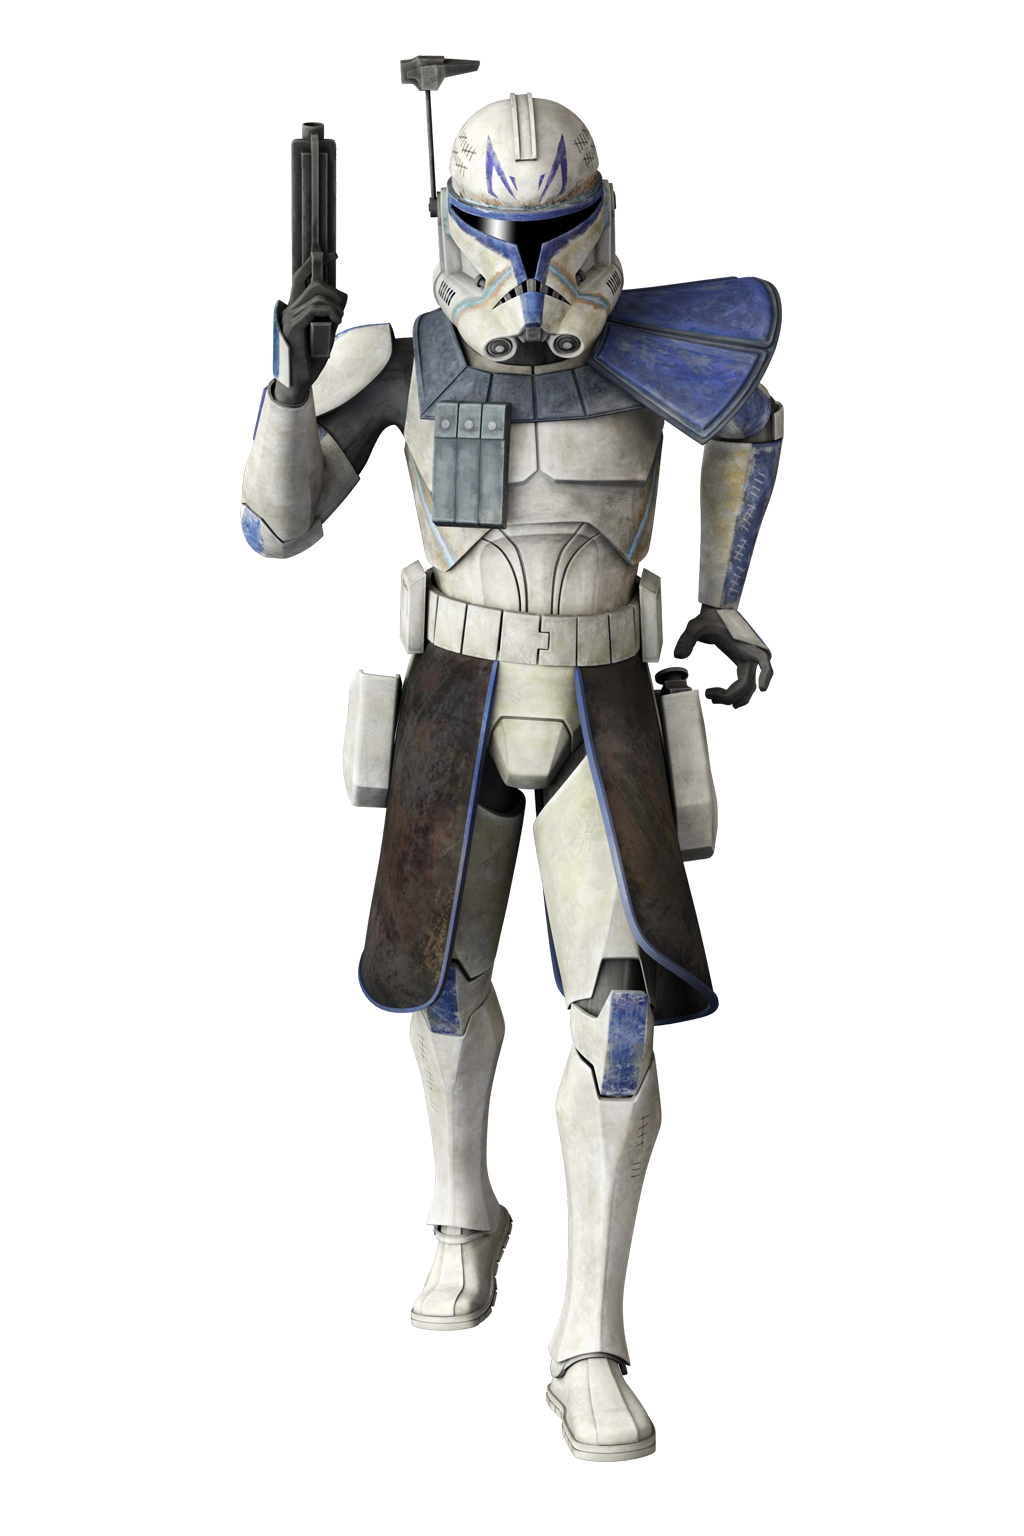 CT-7567 Rex (as of the Clone Wars)